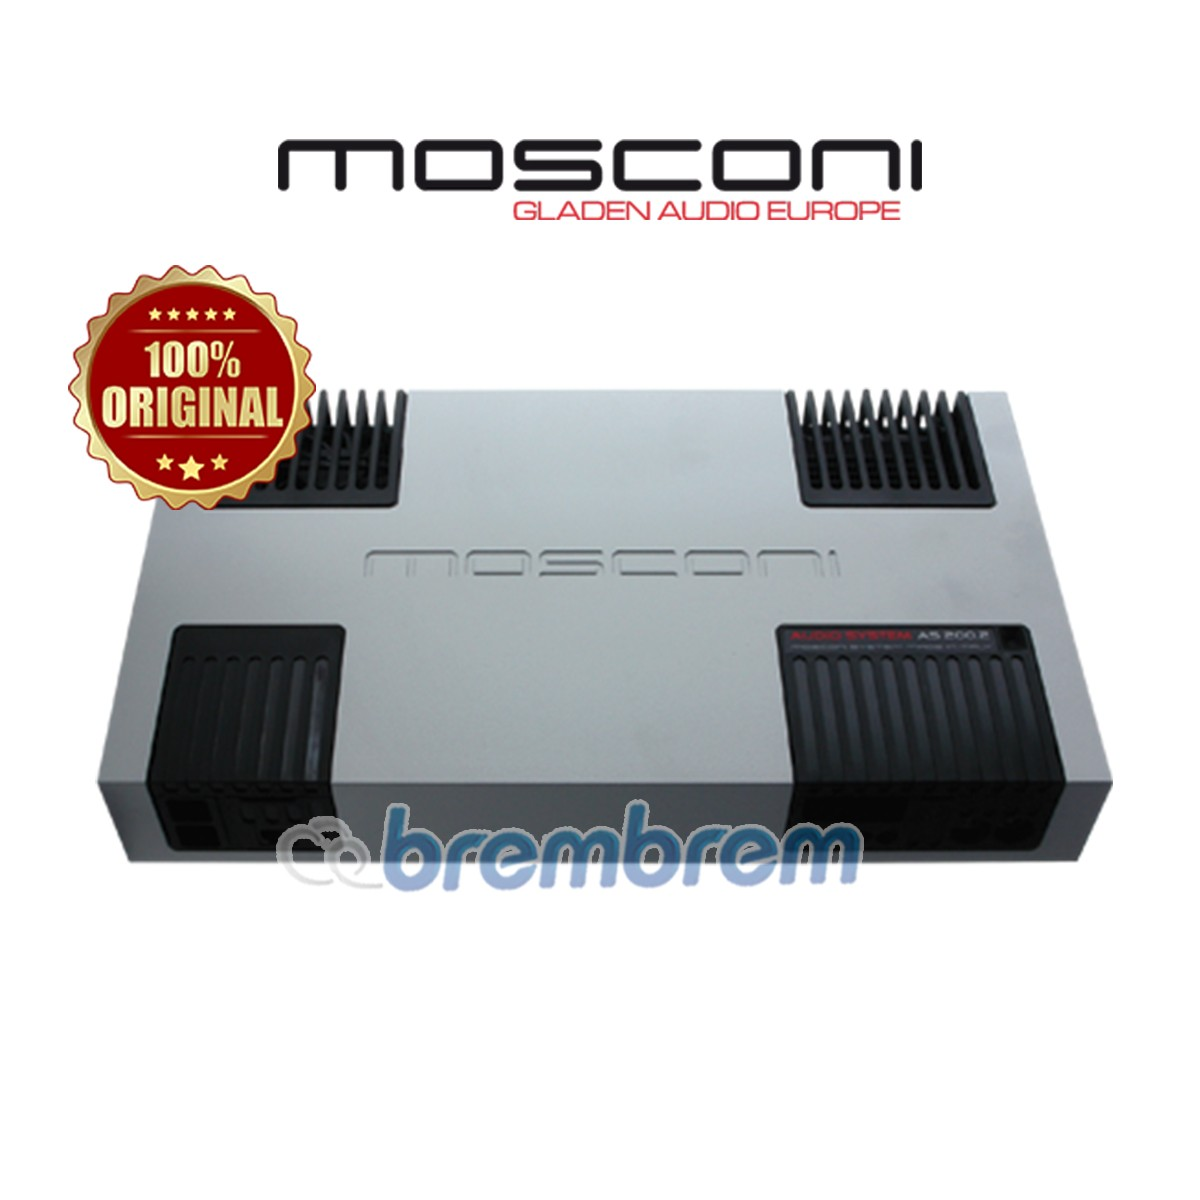 MOSCONI AS 200.2 - POWER 2 CHANNEL